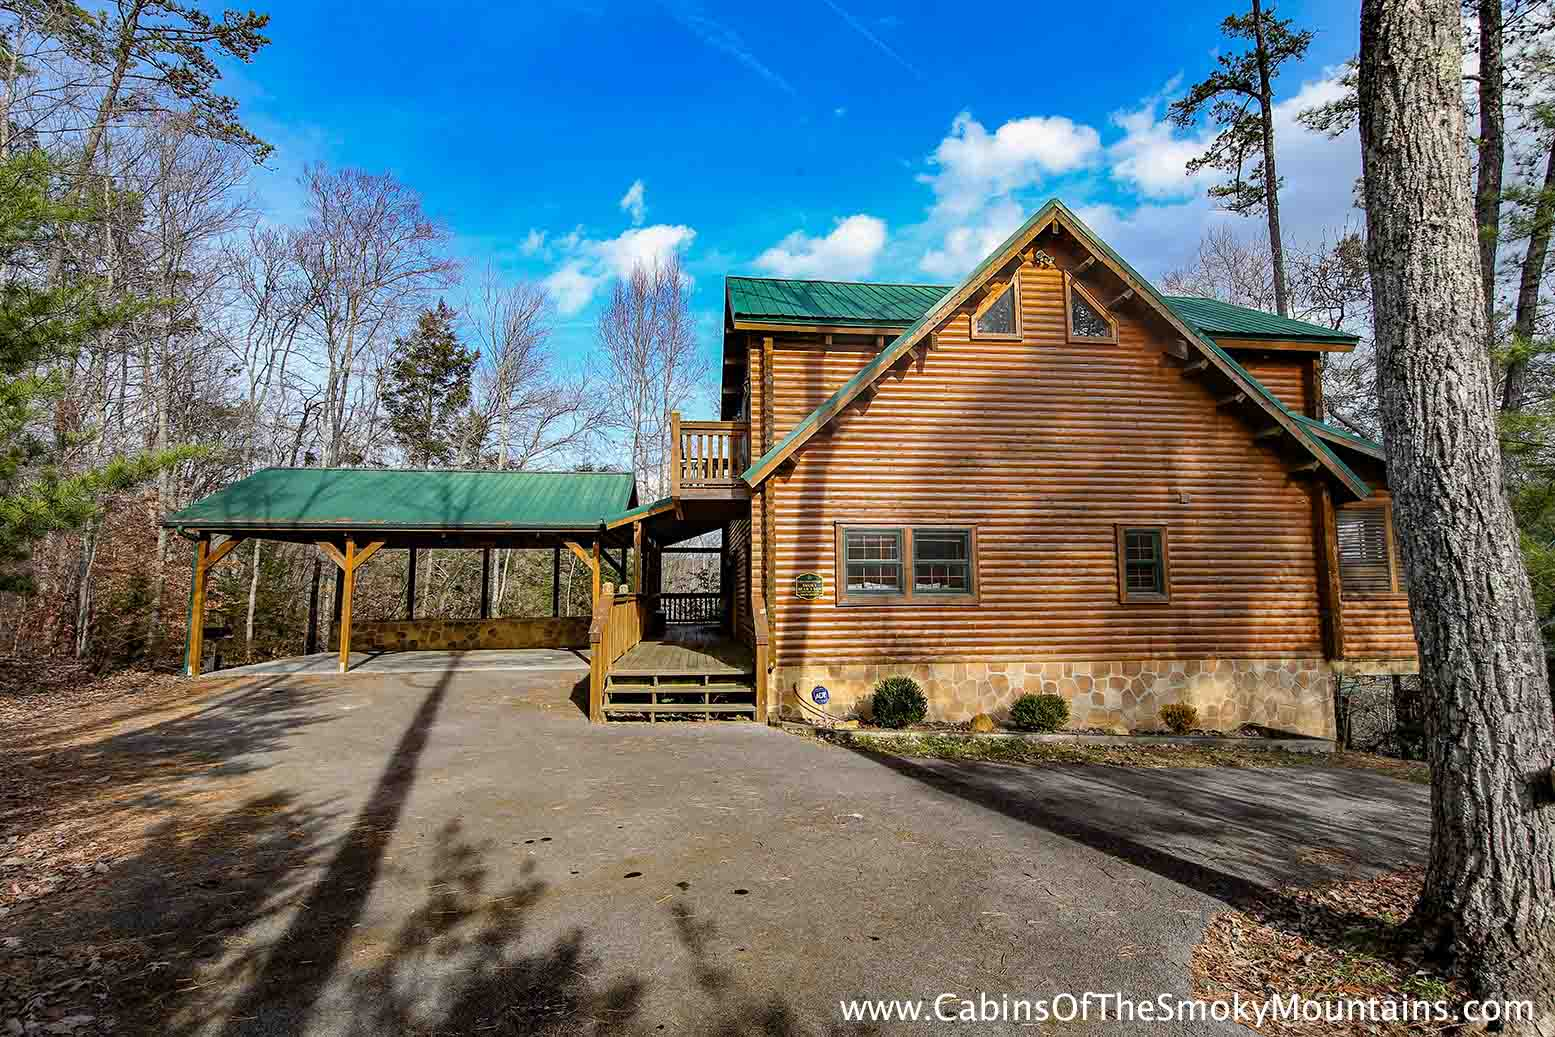 Secluded Cabin Rentals Smoky Mountains Secluded Smoky: cabin rental smokey mountains